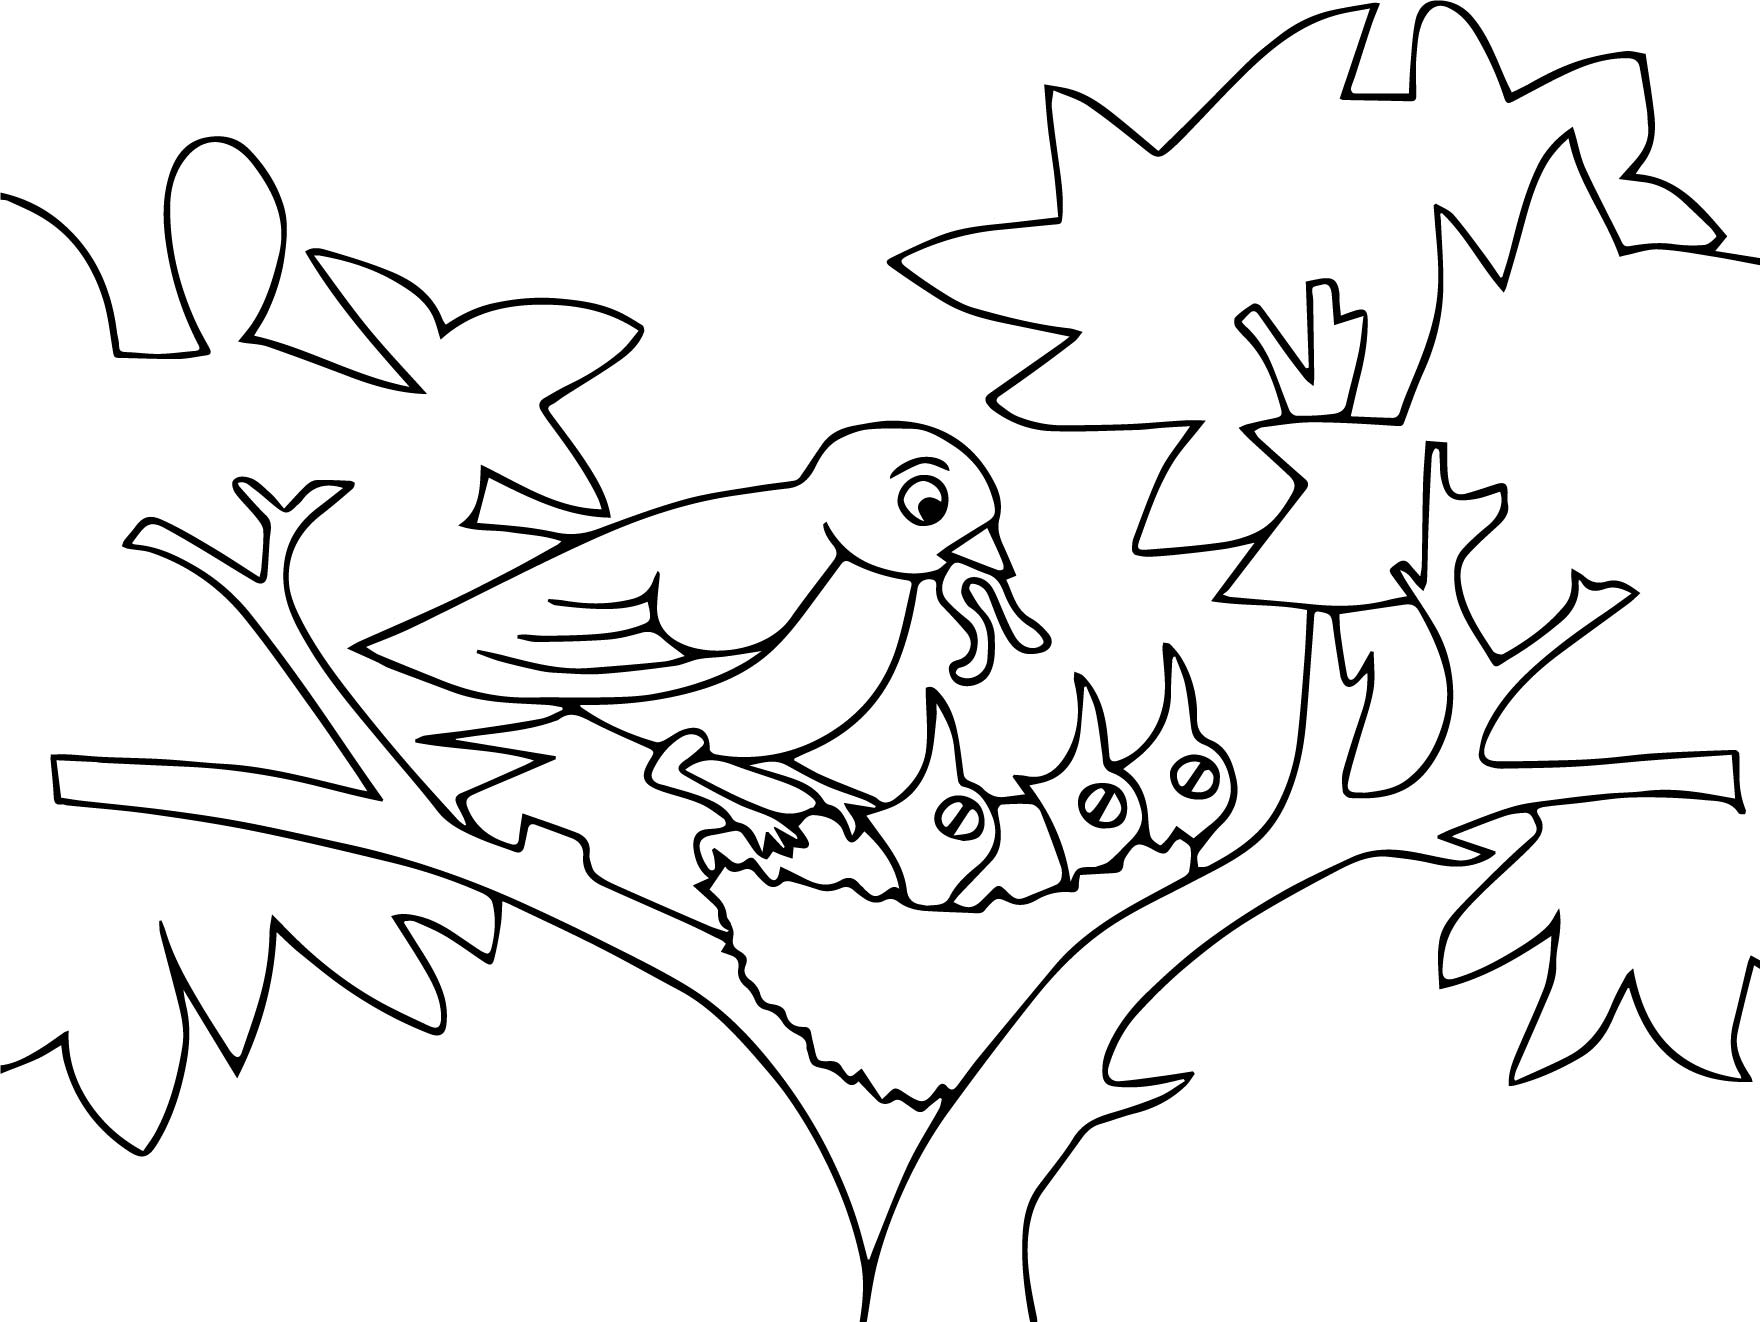 cartoon birds coloring pages - photo#26